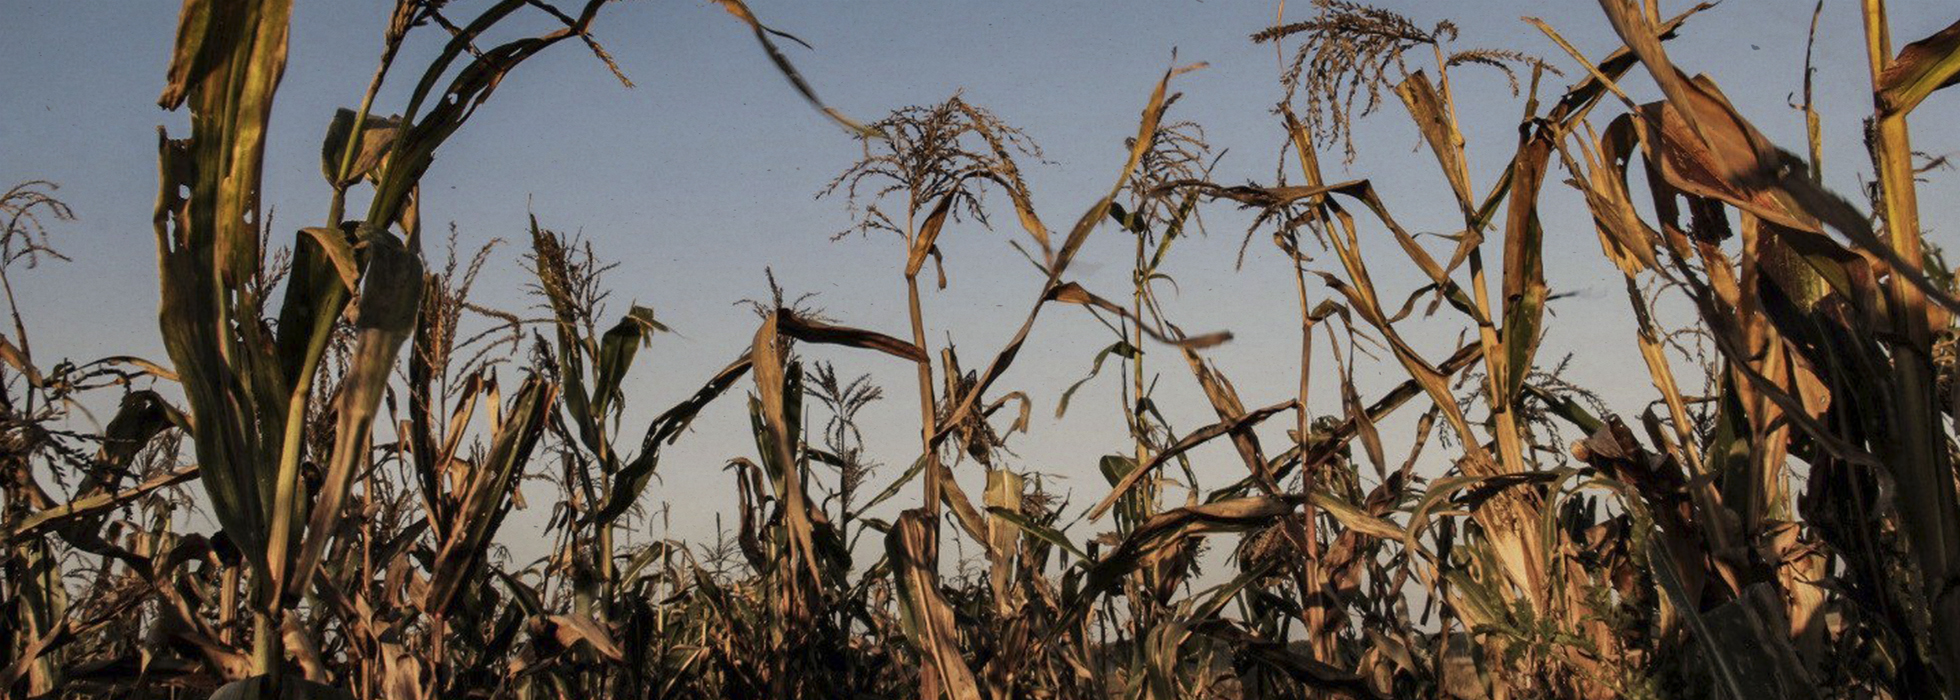 Concern over potential authorization of GM wheat in Uruguay